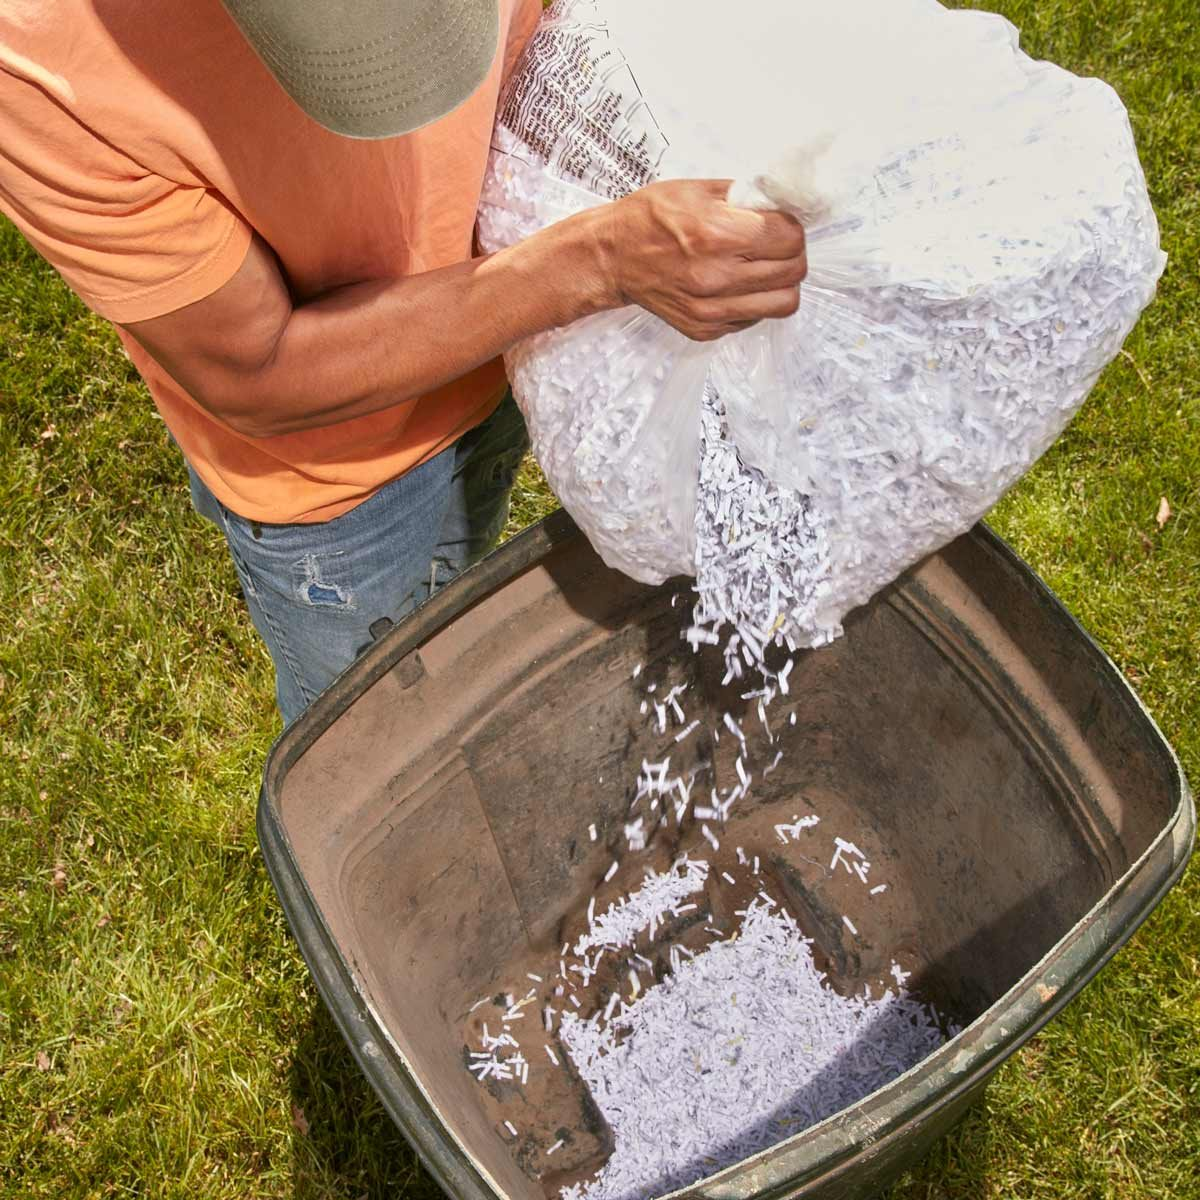 No More Smelly Lawn Clippings